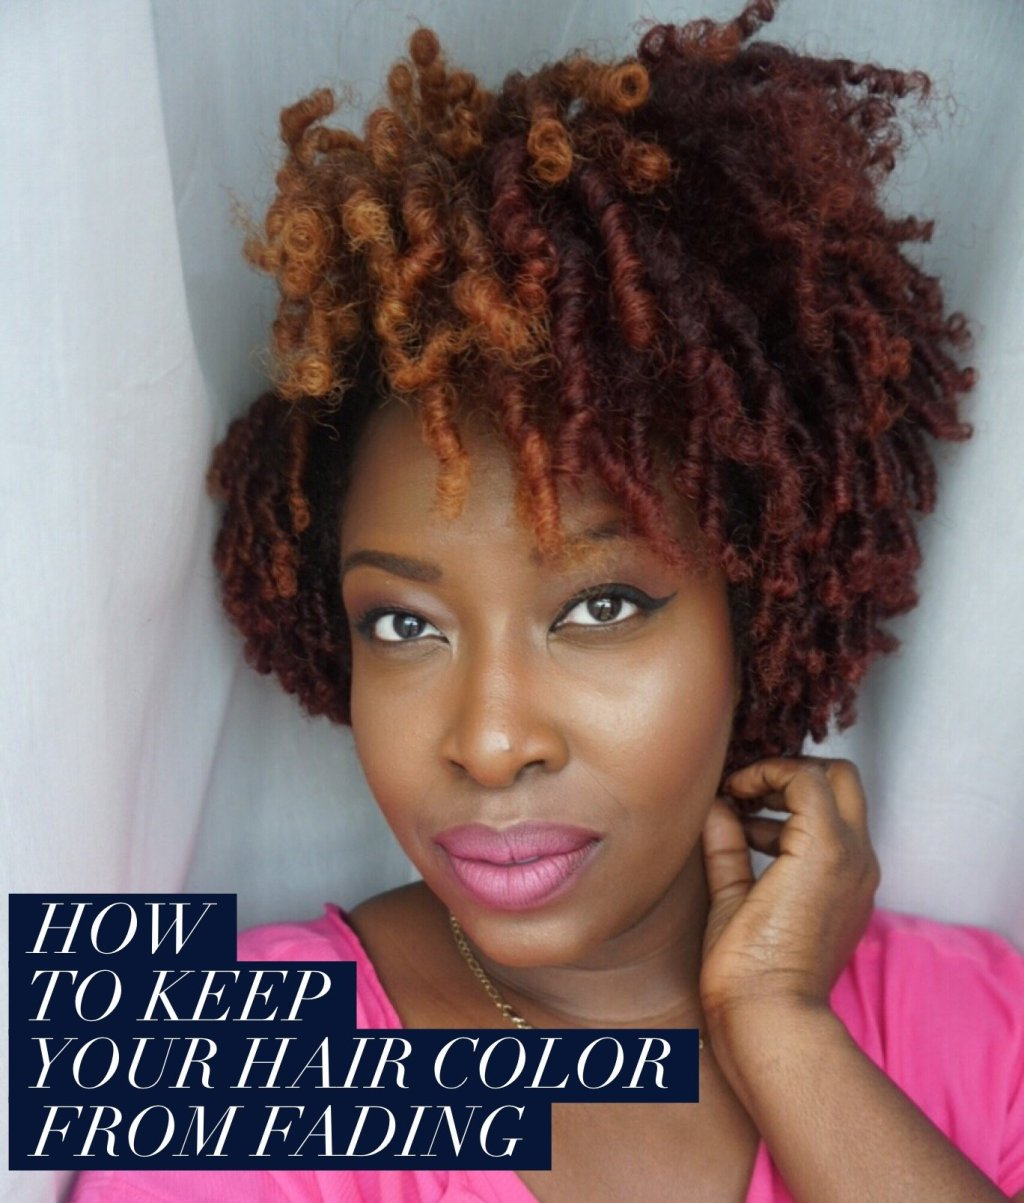 How To Keep Your Hair Color From Fading On Natural Hair Ijeoma Kola